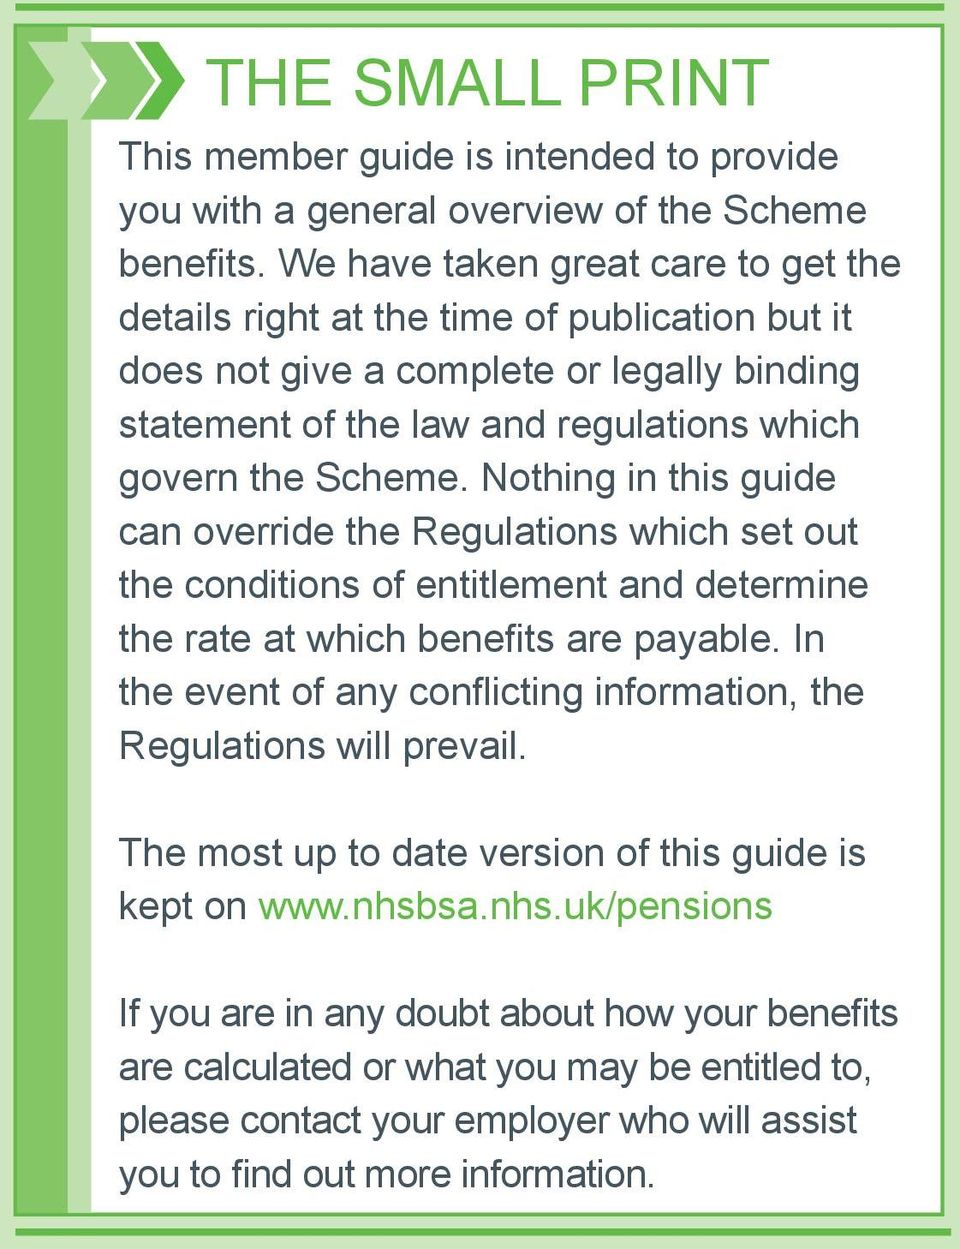 Nothing in this guide can override the Regulations which set out the conditions of entitlement and determine the rate at which benefits are payable.